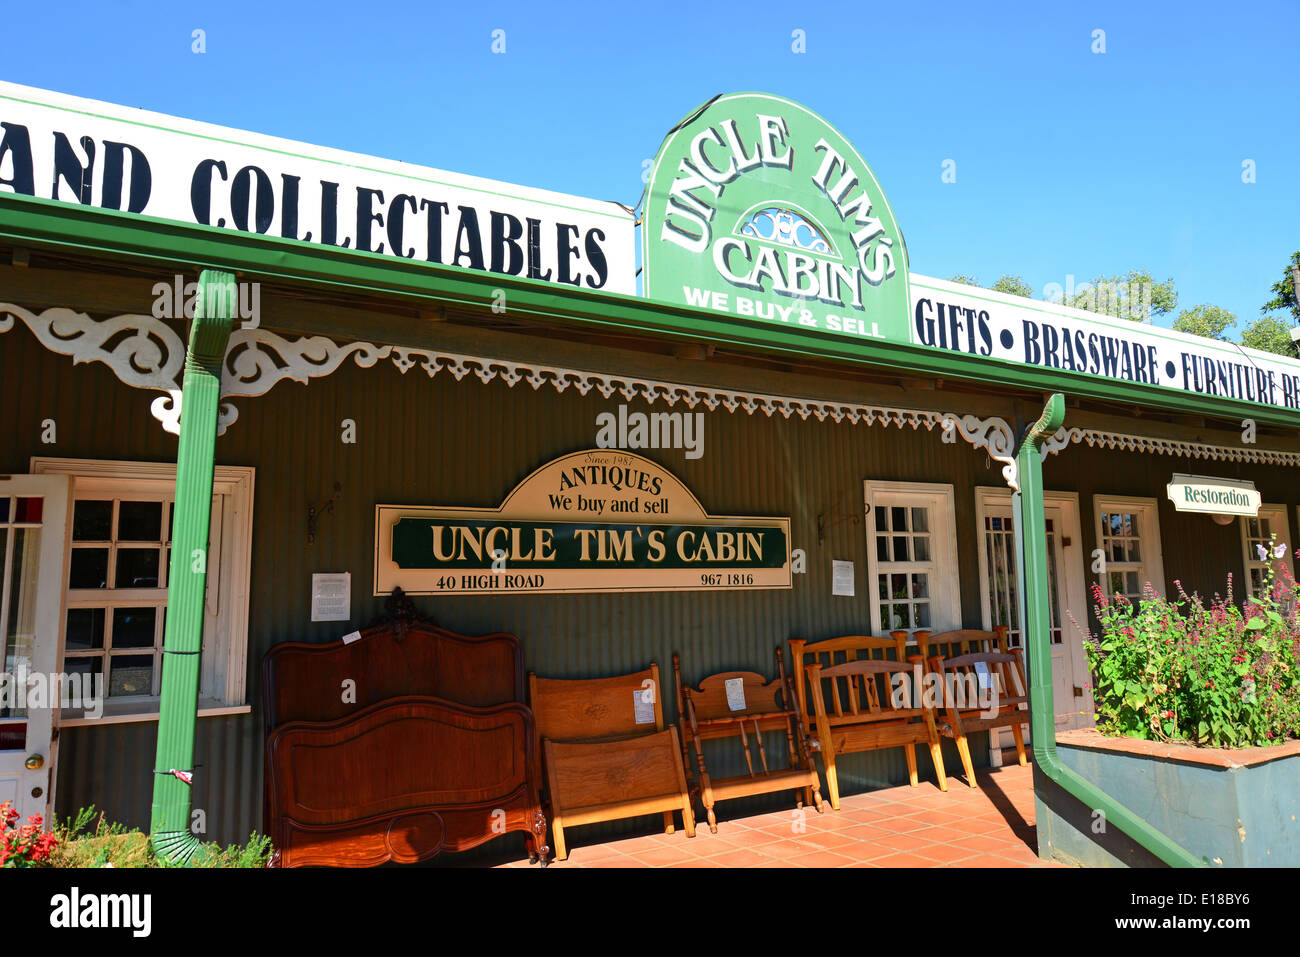 Uncle Tim's Cabin Antiques, High Road, Brentwood Park, Benoni, East Rand, Gauteng Province, Republic of South Africa - Stock Image